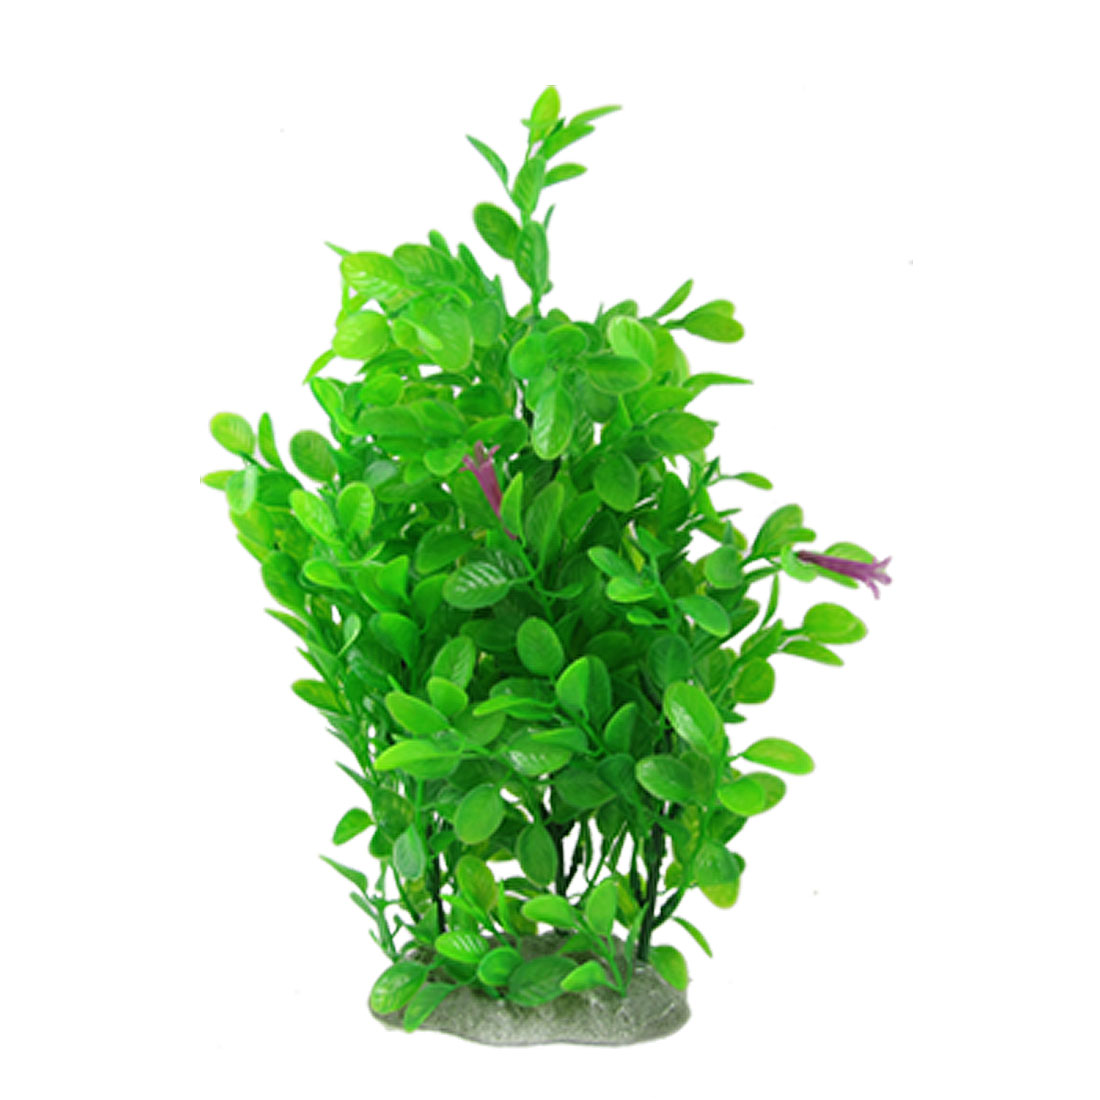 Purple Floral Green Grass Ornament Decor for Fish Tank